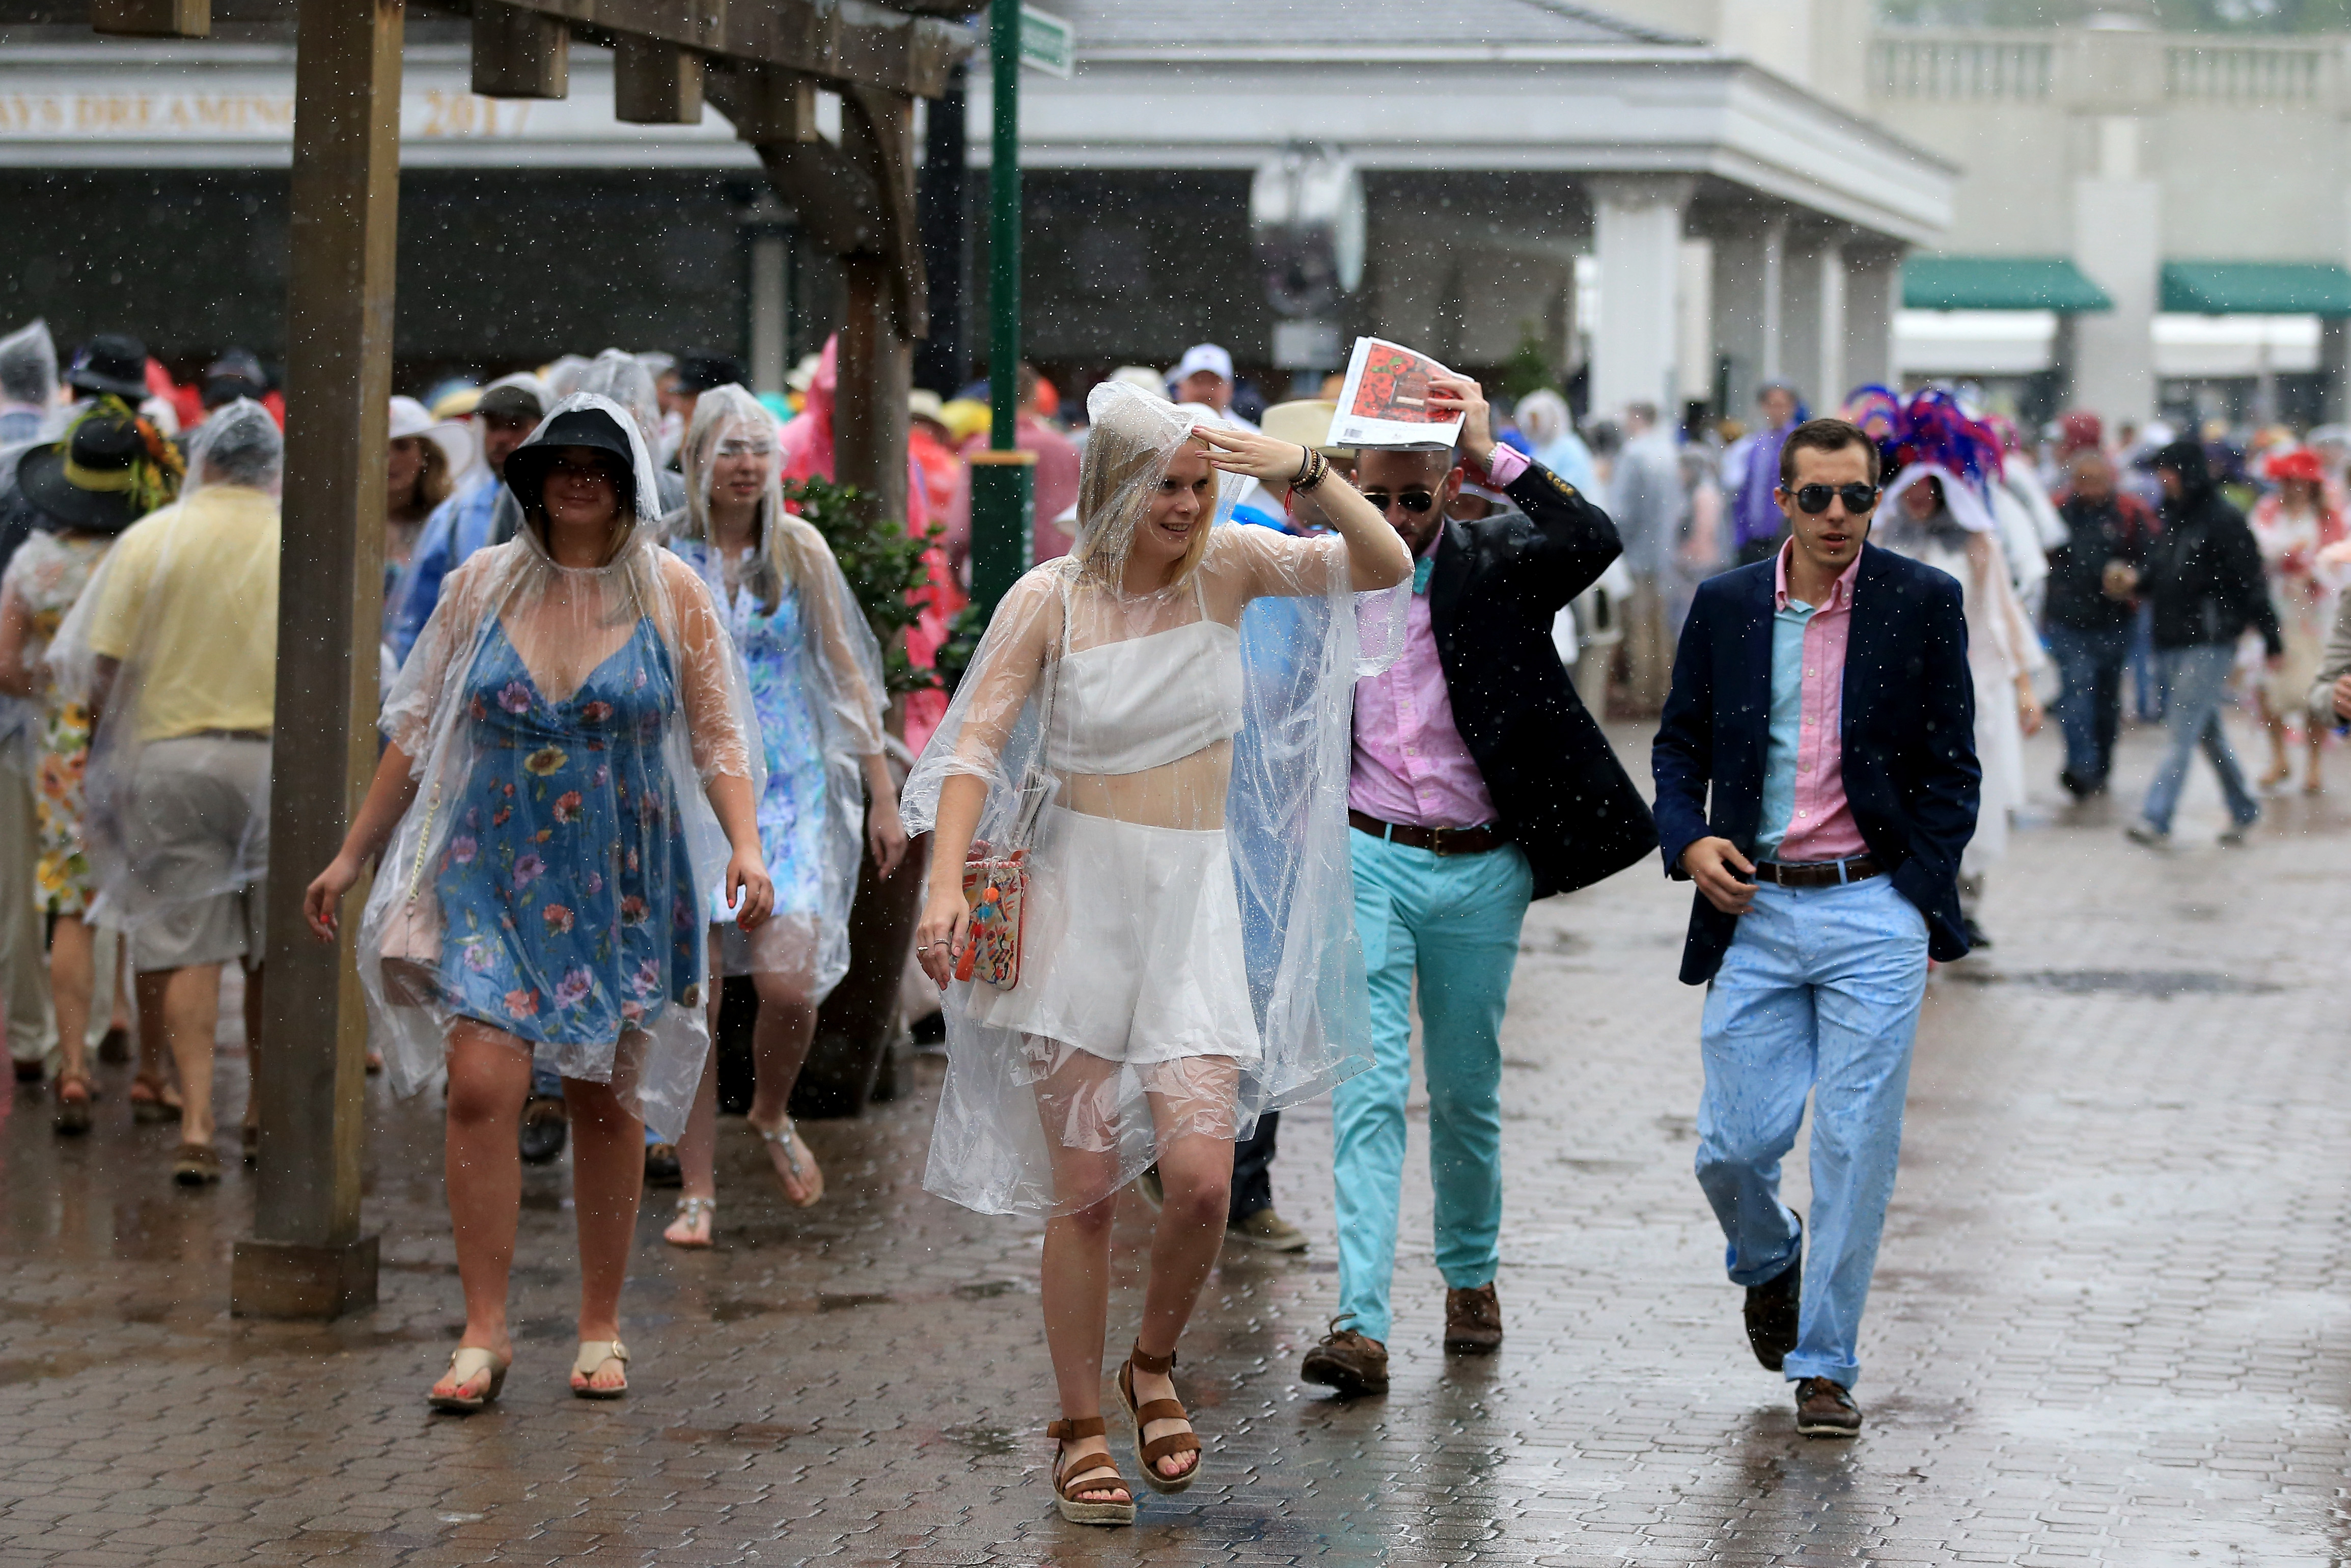 Patrons deal with rain prior to the 144th running of the Kentucky Derby at Churchill Downs on May 5, 2018 in Louisville